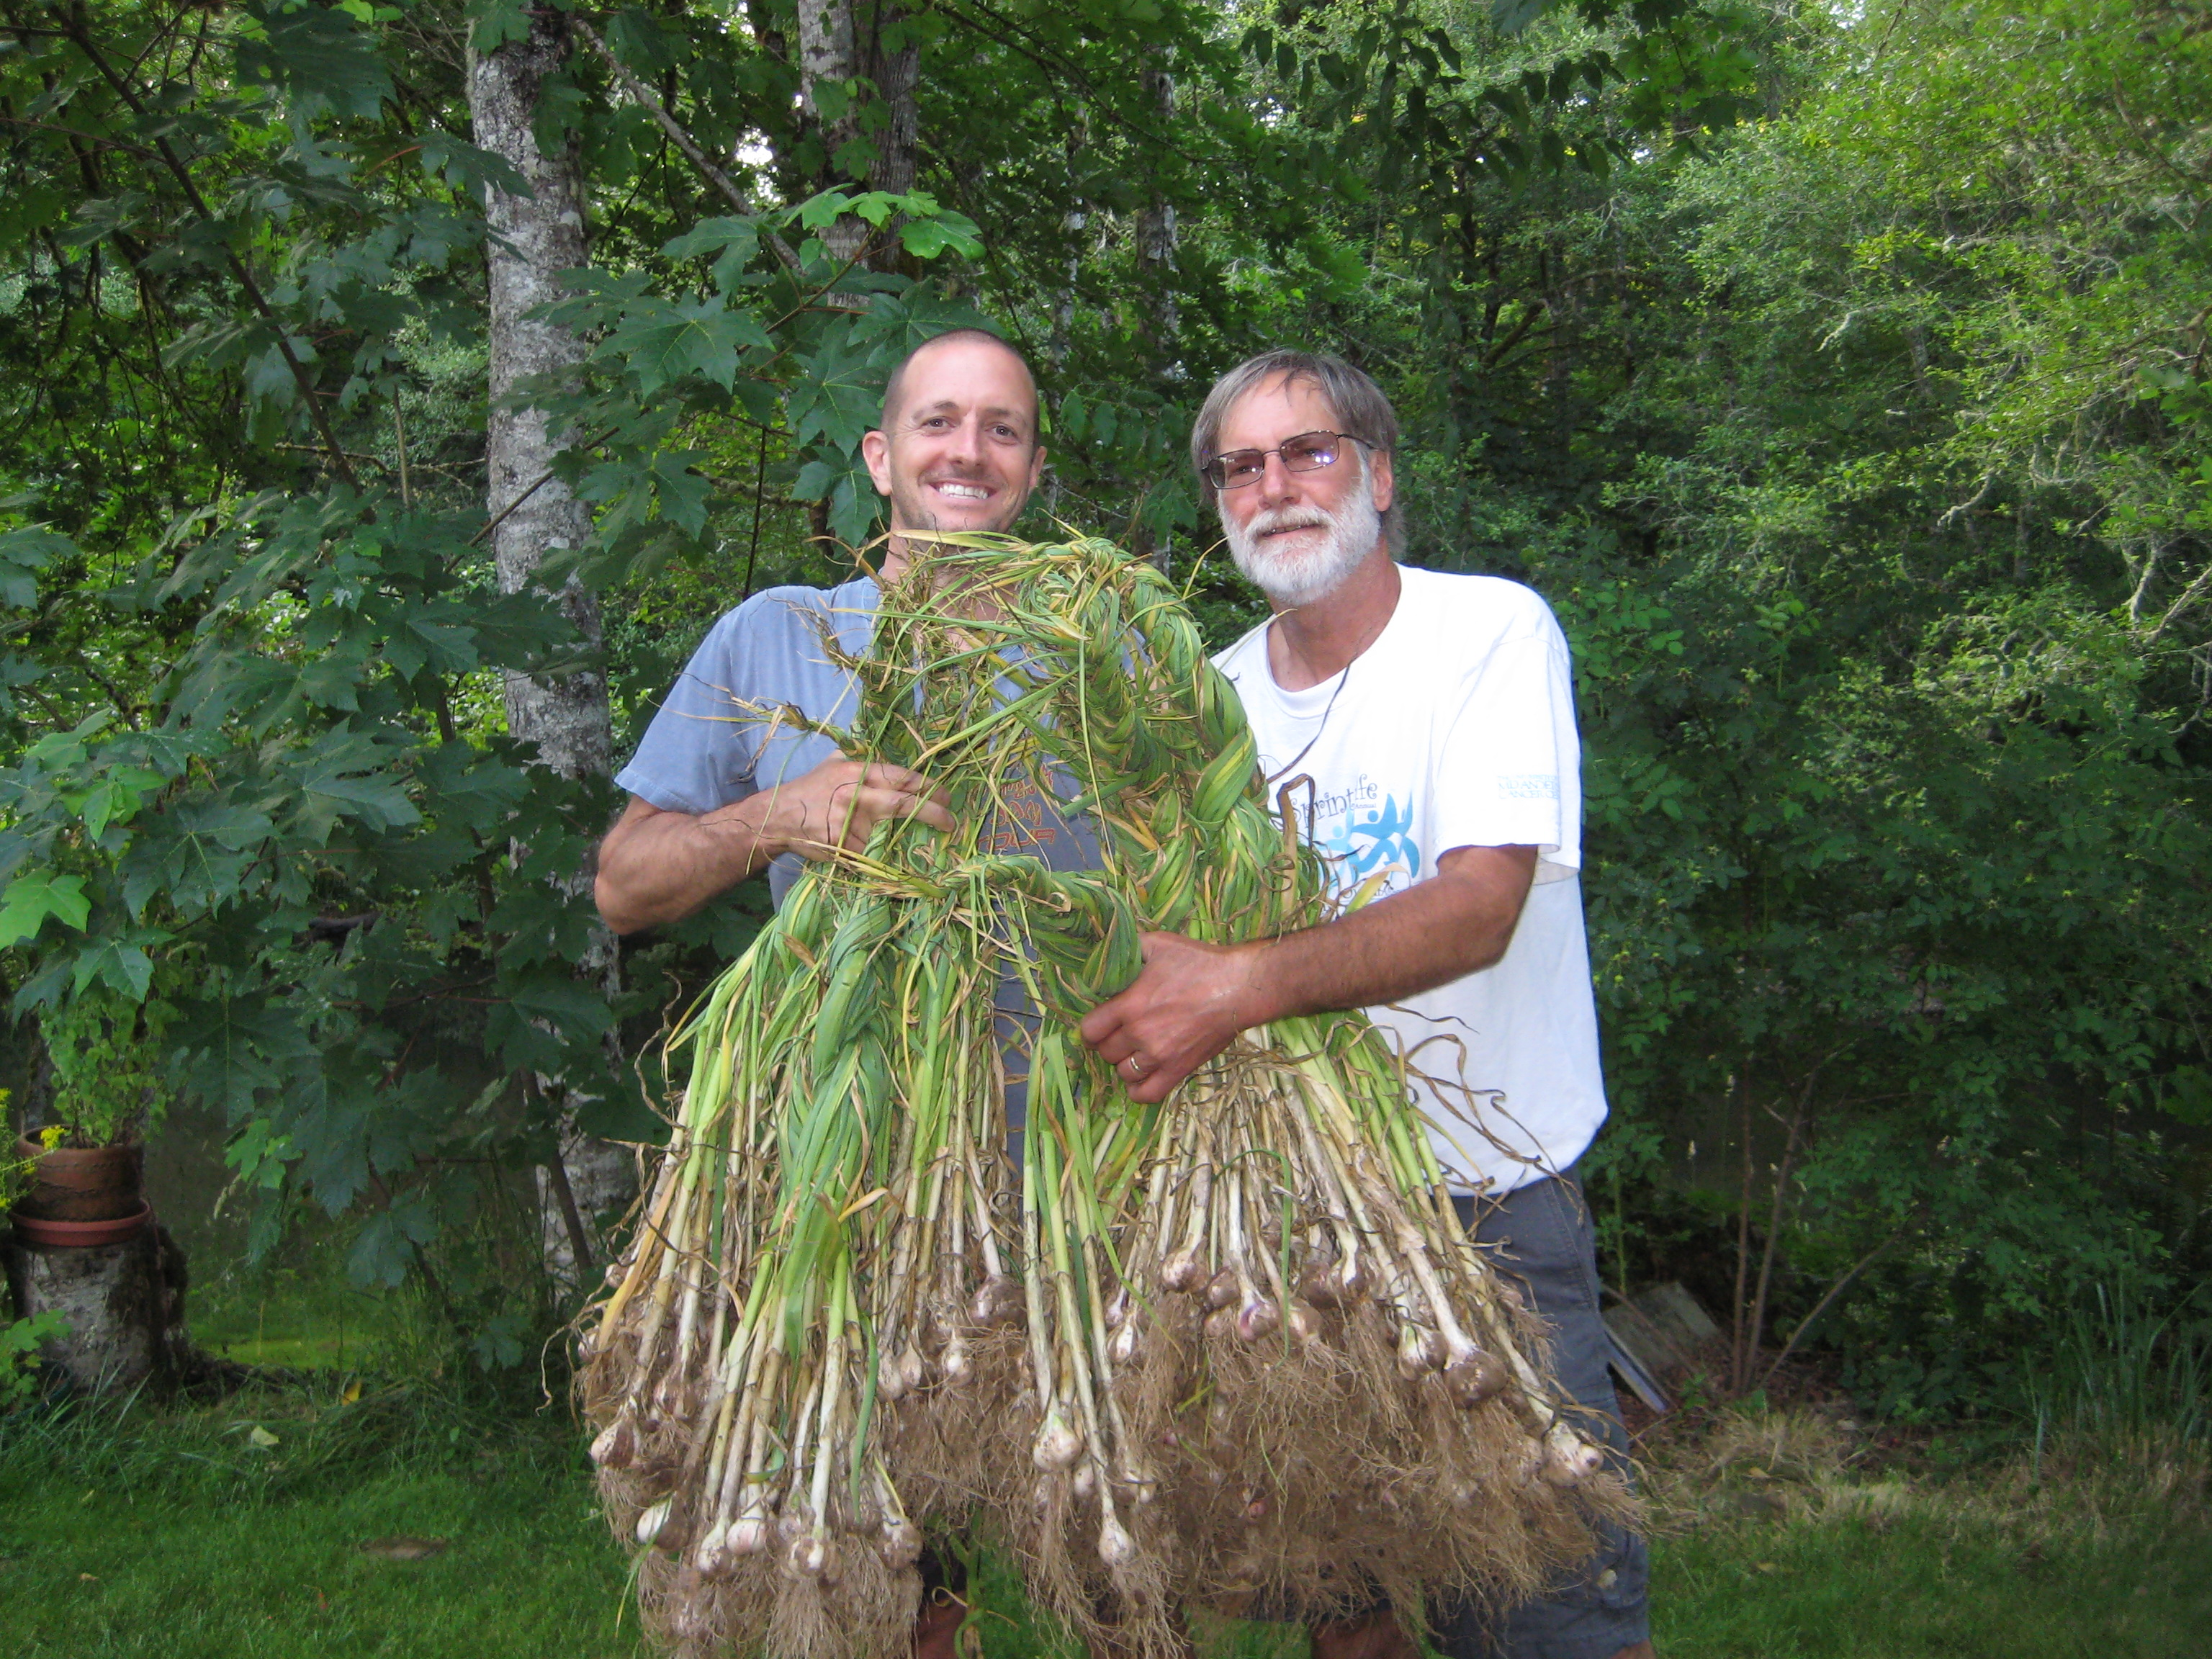 Mike Munter (left) with garlic harvest